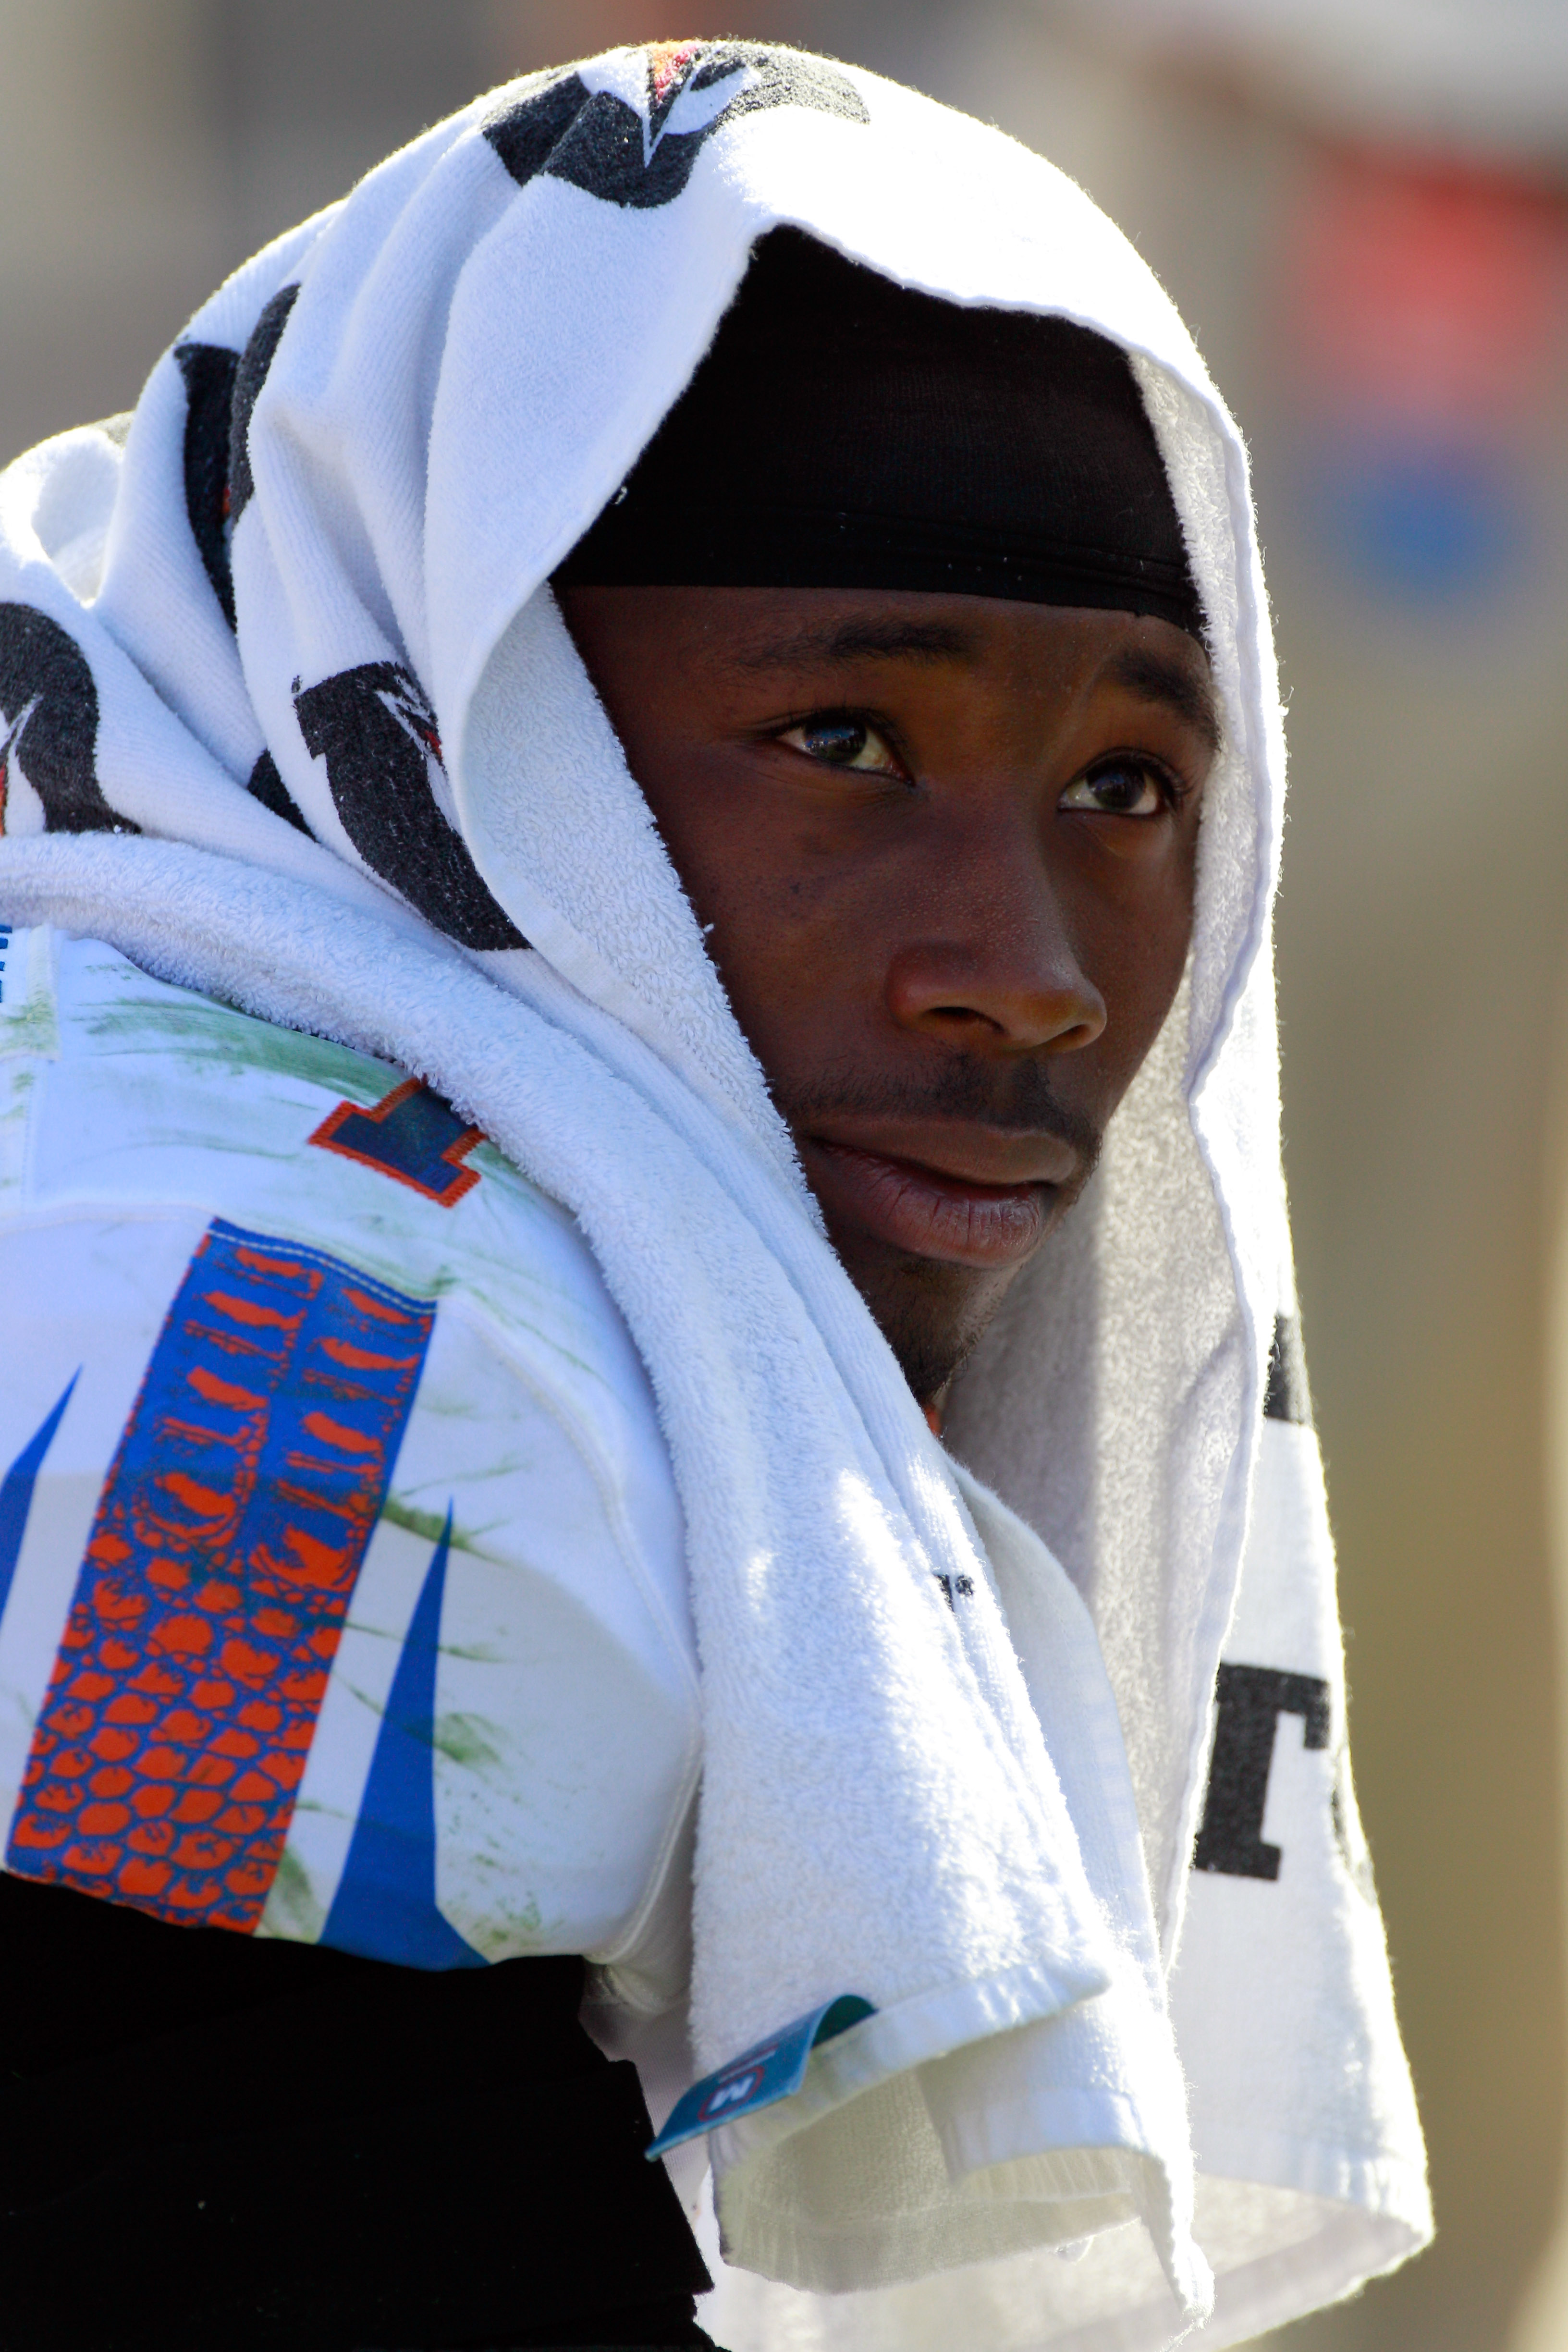 JACKSONVILLE, FL - OCTOBER 30:  Janoris Jenkins #1 of the Florida Gators watches the action during the game against the Georgia Bulldogs at EverBank Field on October 30, 2010 in Jacksonville, Florida.  (Photo by Sam Greenwood/Getty Images)